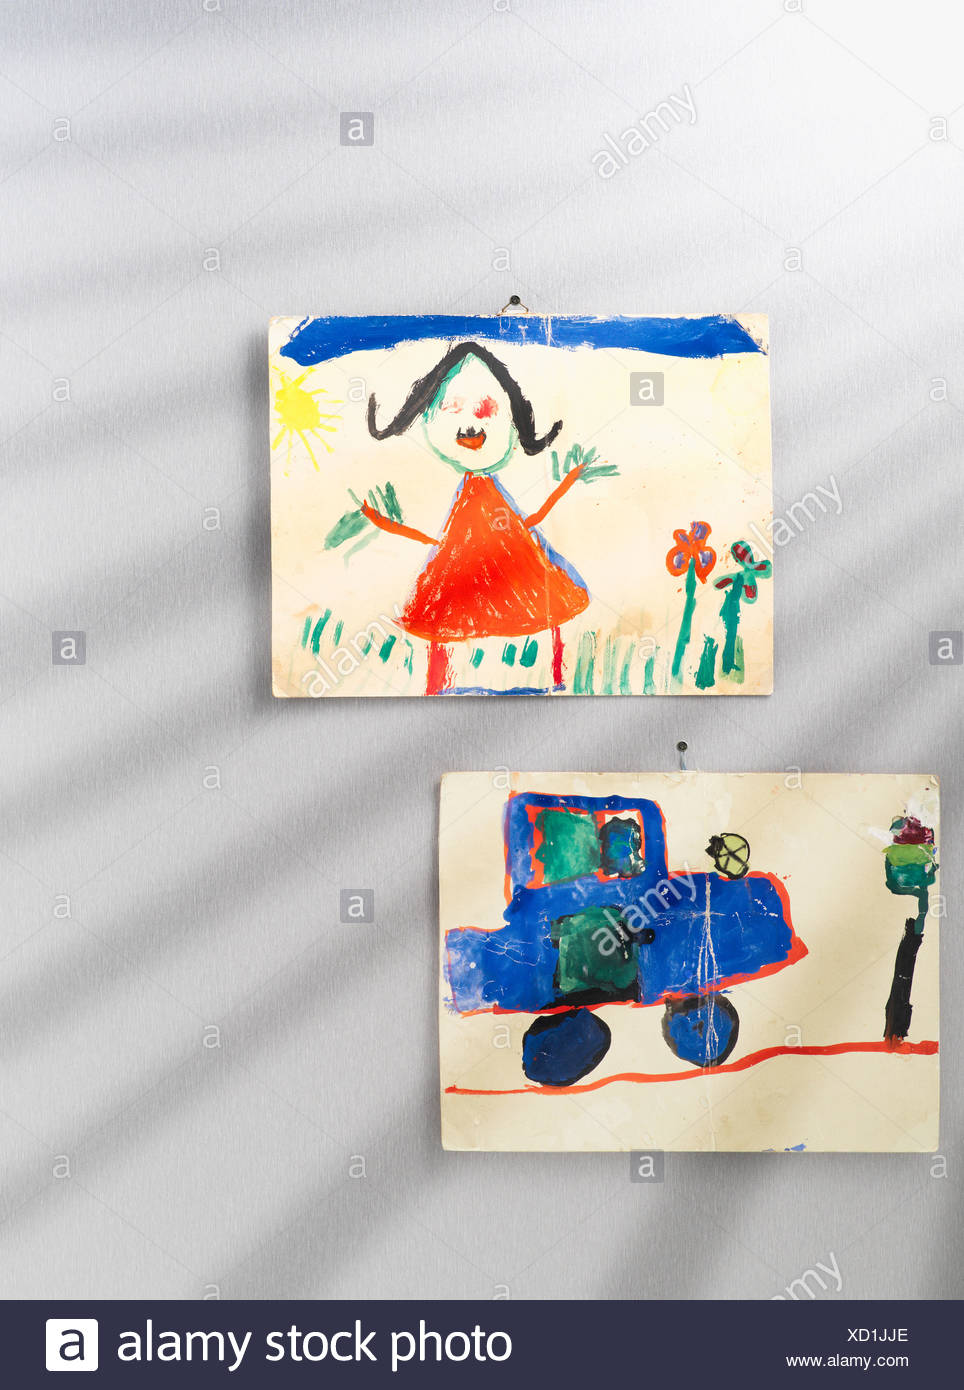 Childs pictures on a wall - Stock Image